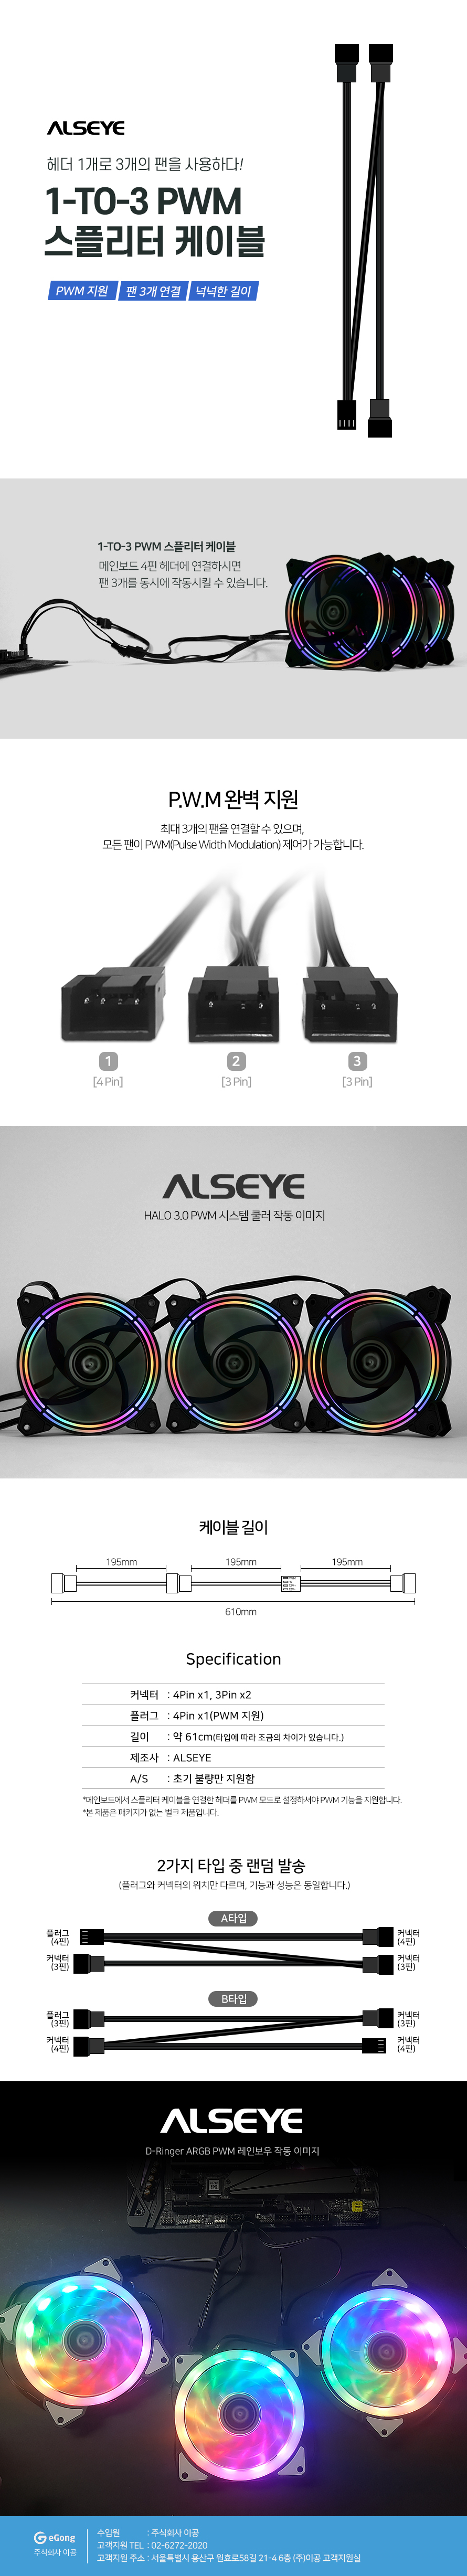 ALSEYE 1-TO-3 Splitter Cable (벌크)